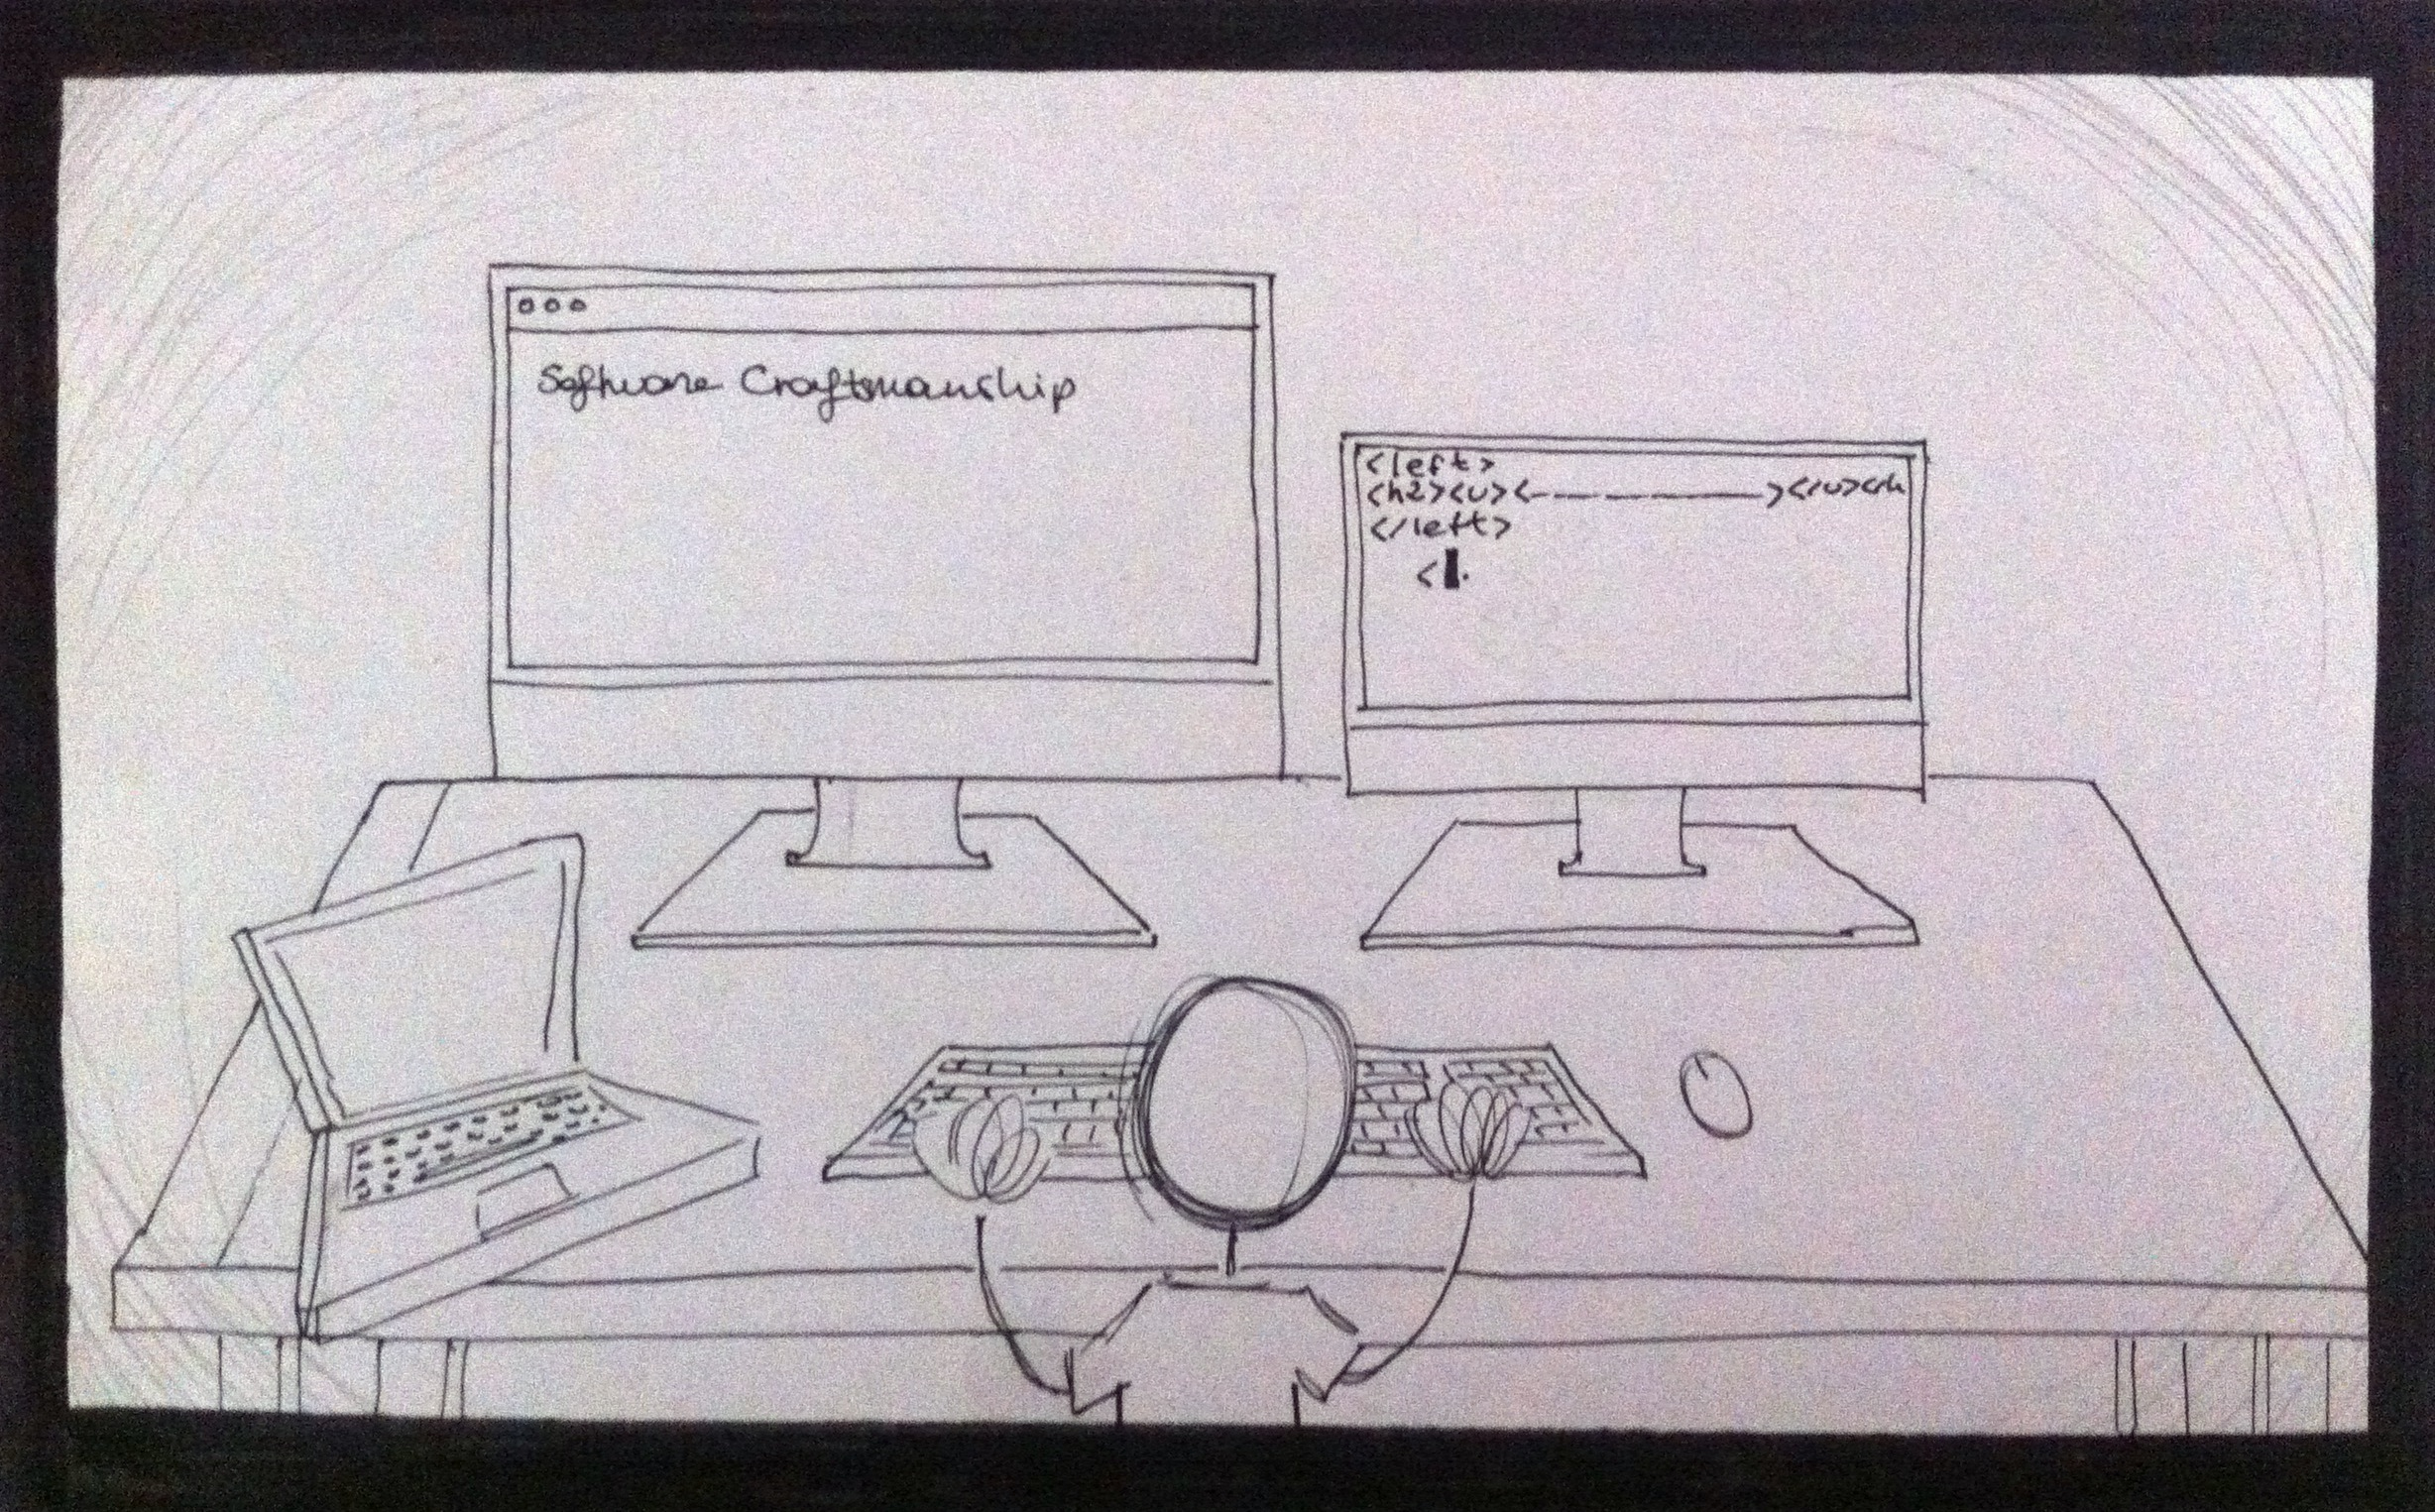 Mental Image: The Software Craftsman, Drawing © Caterina Tiezzi, 2014.